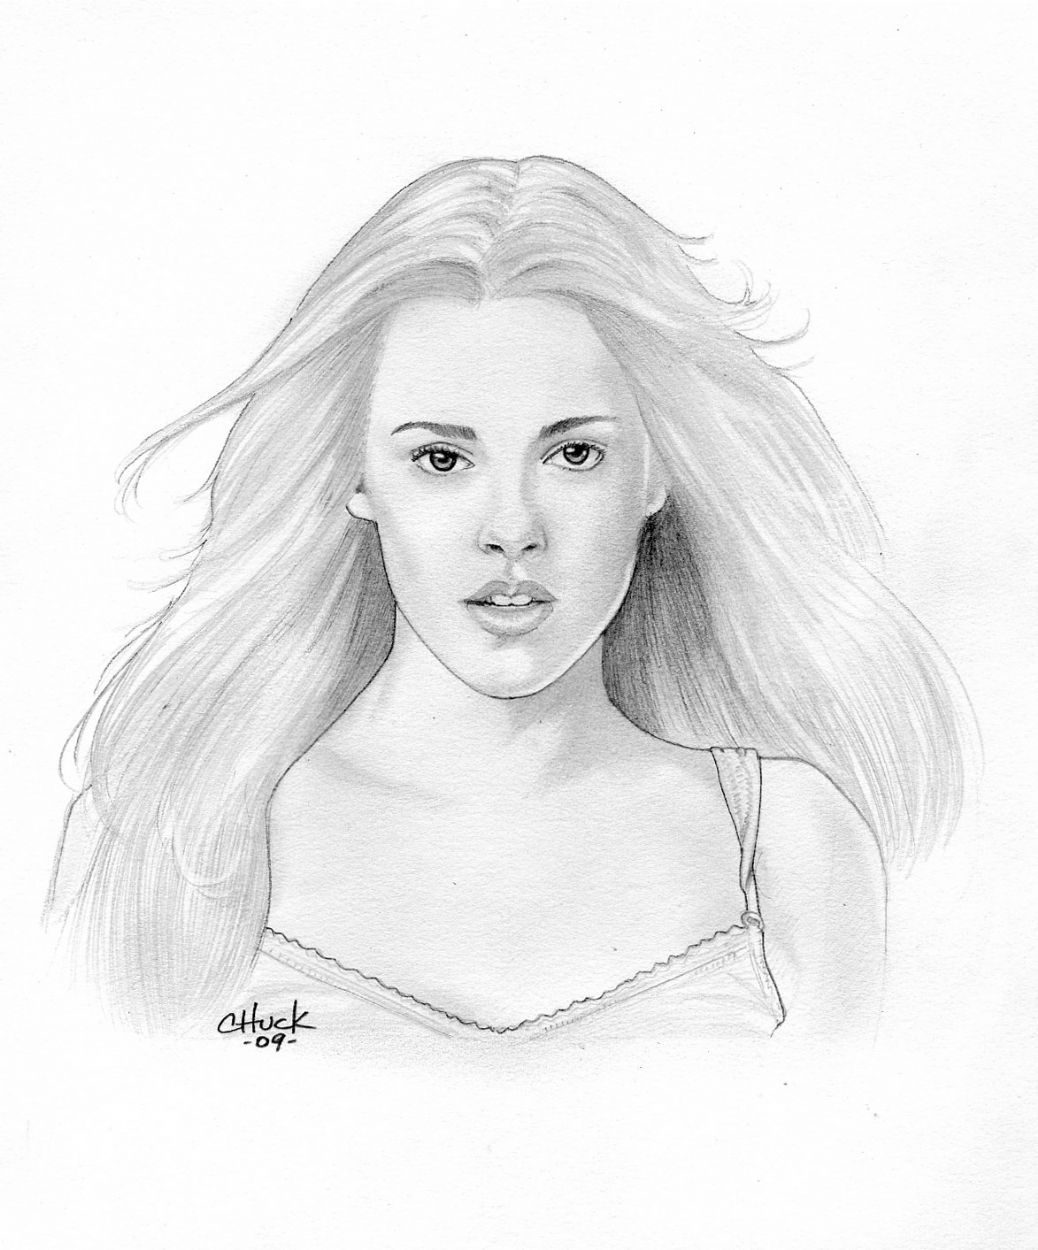 bella coloring pages bella swan coloring pages kidsuki bella pages coloring